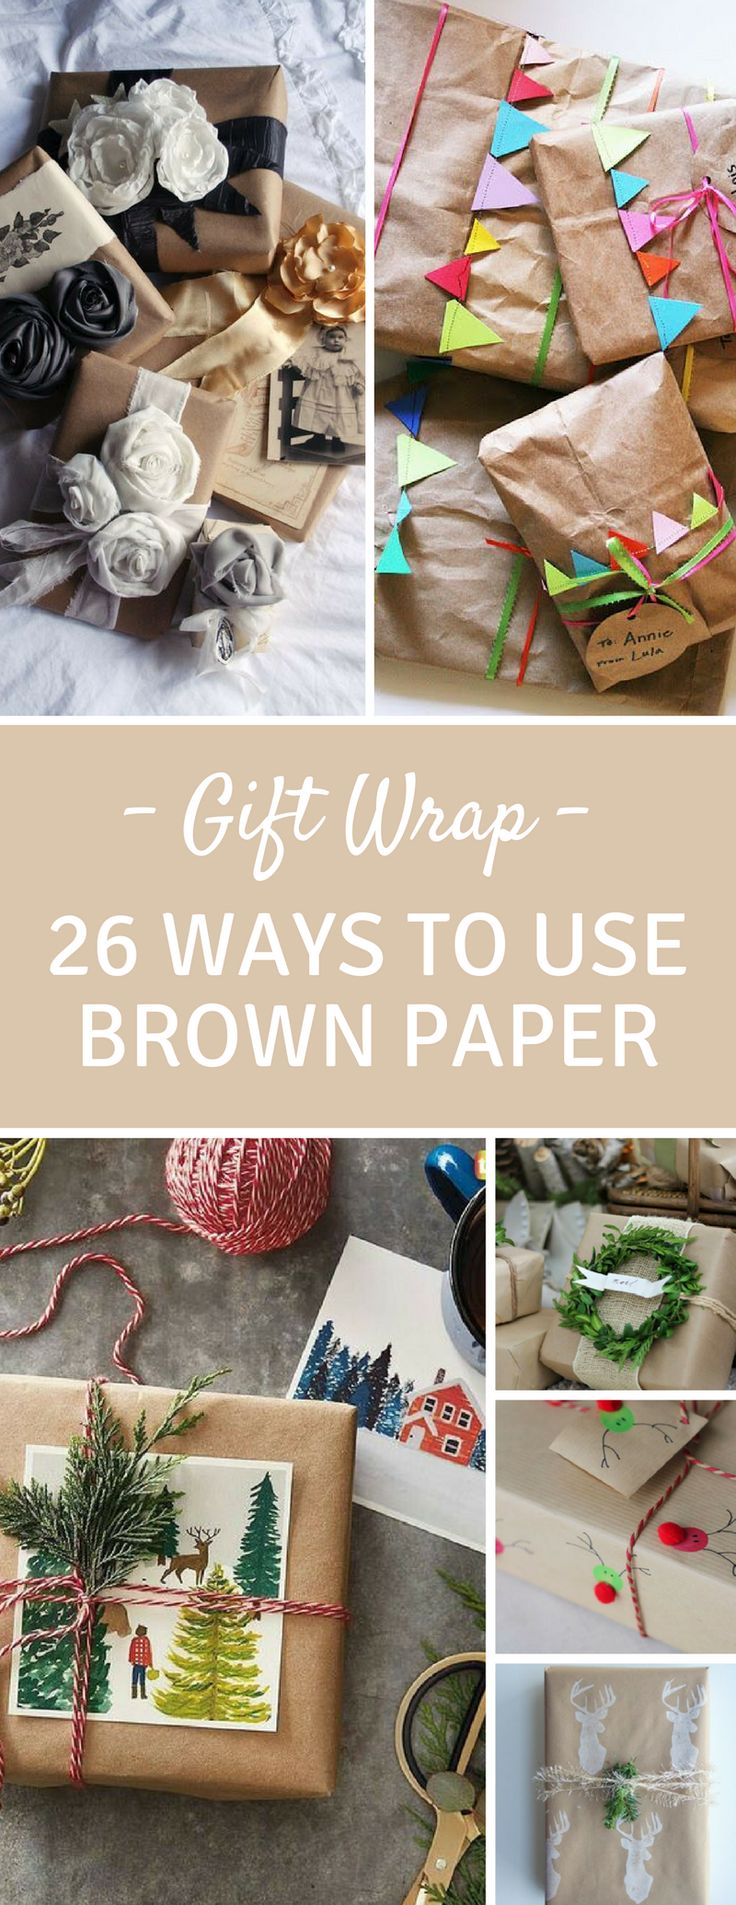 26 Unique Gift Wrap Ideas Using Brown